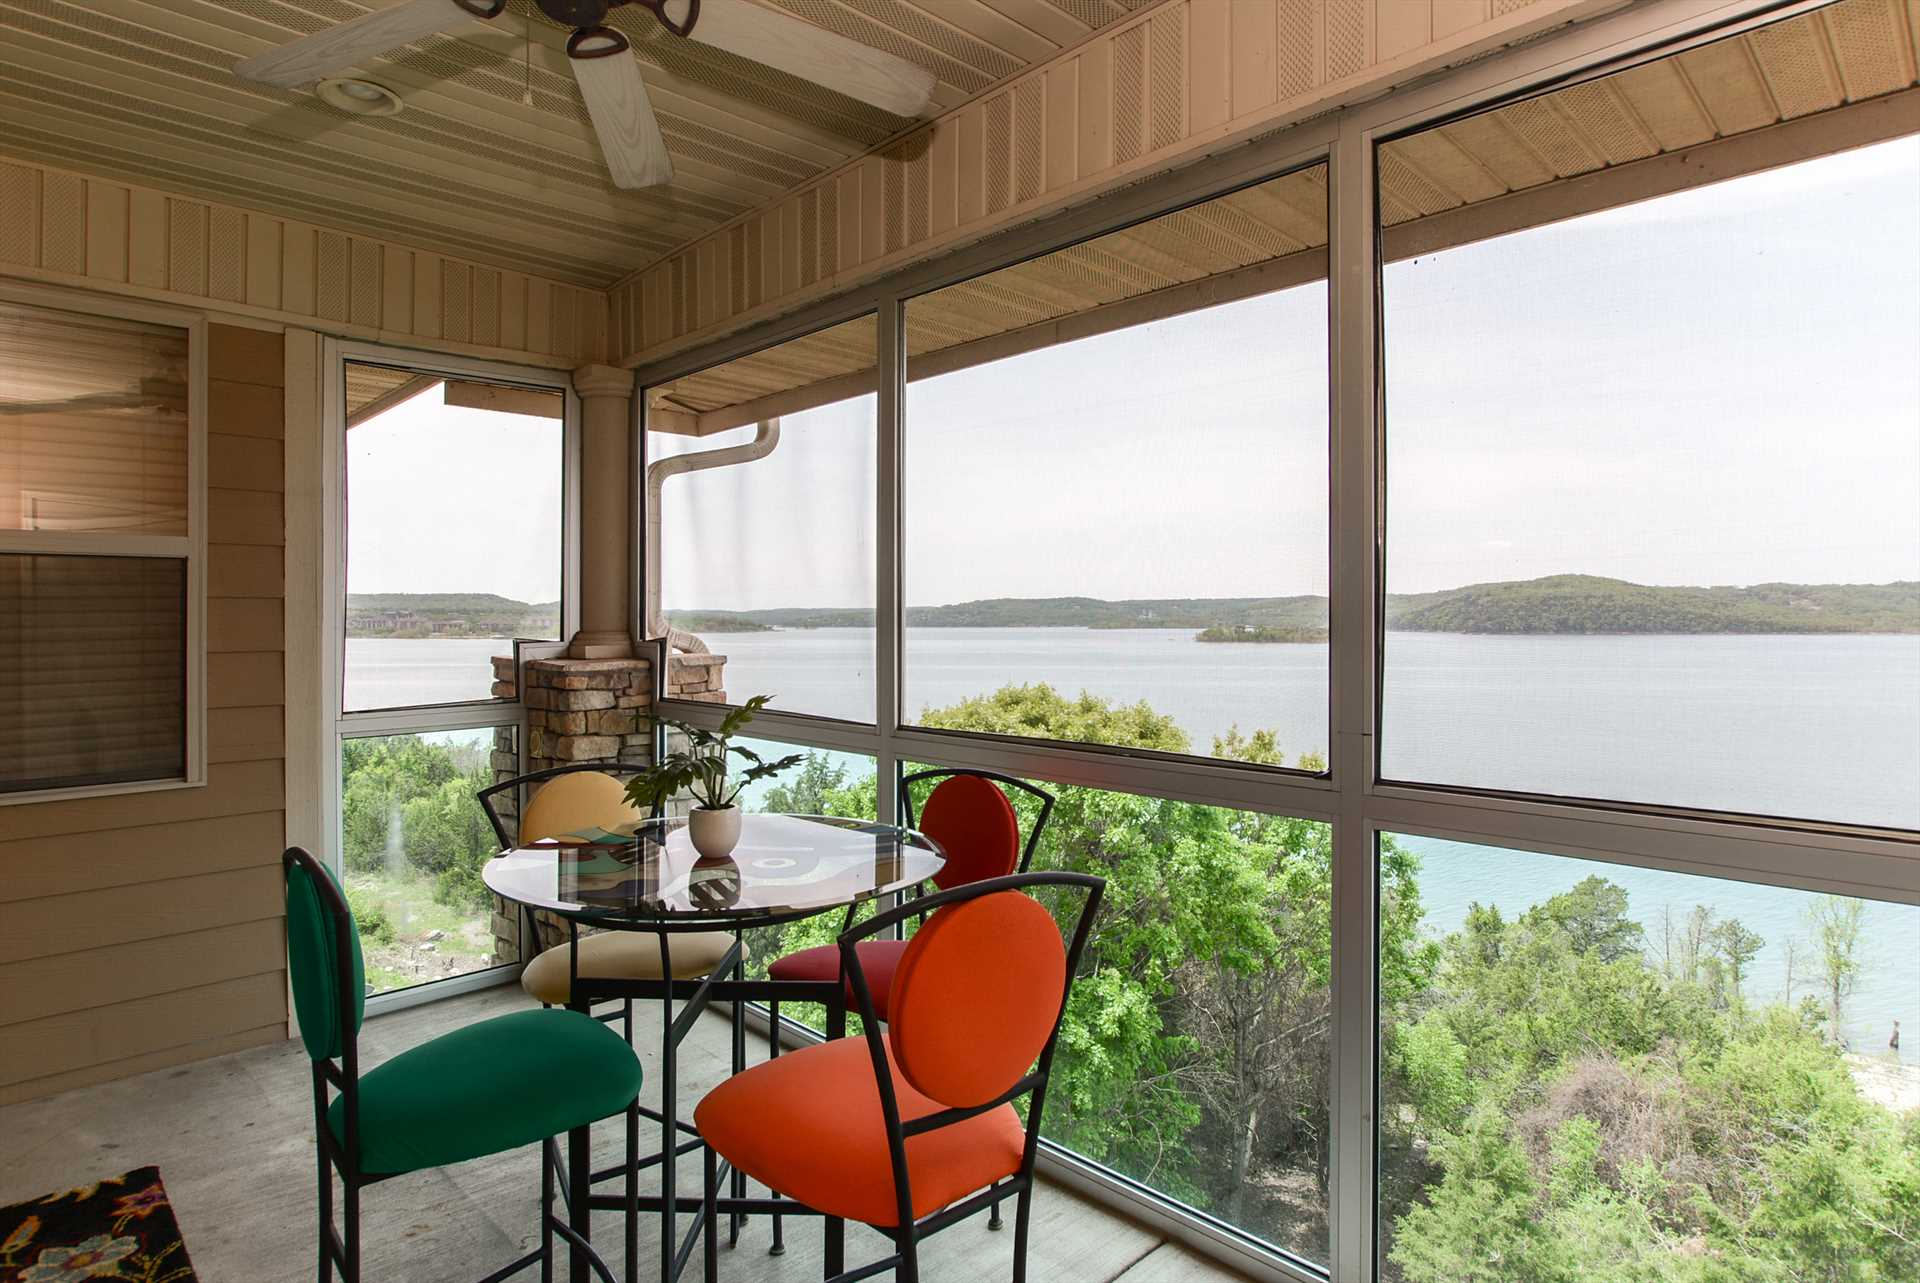 The screened in porch provides gorgeous views of the lake al